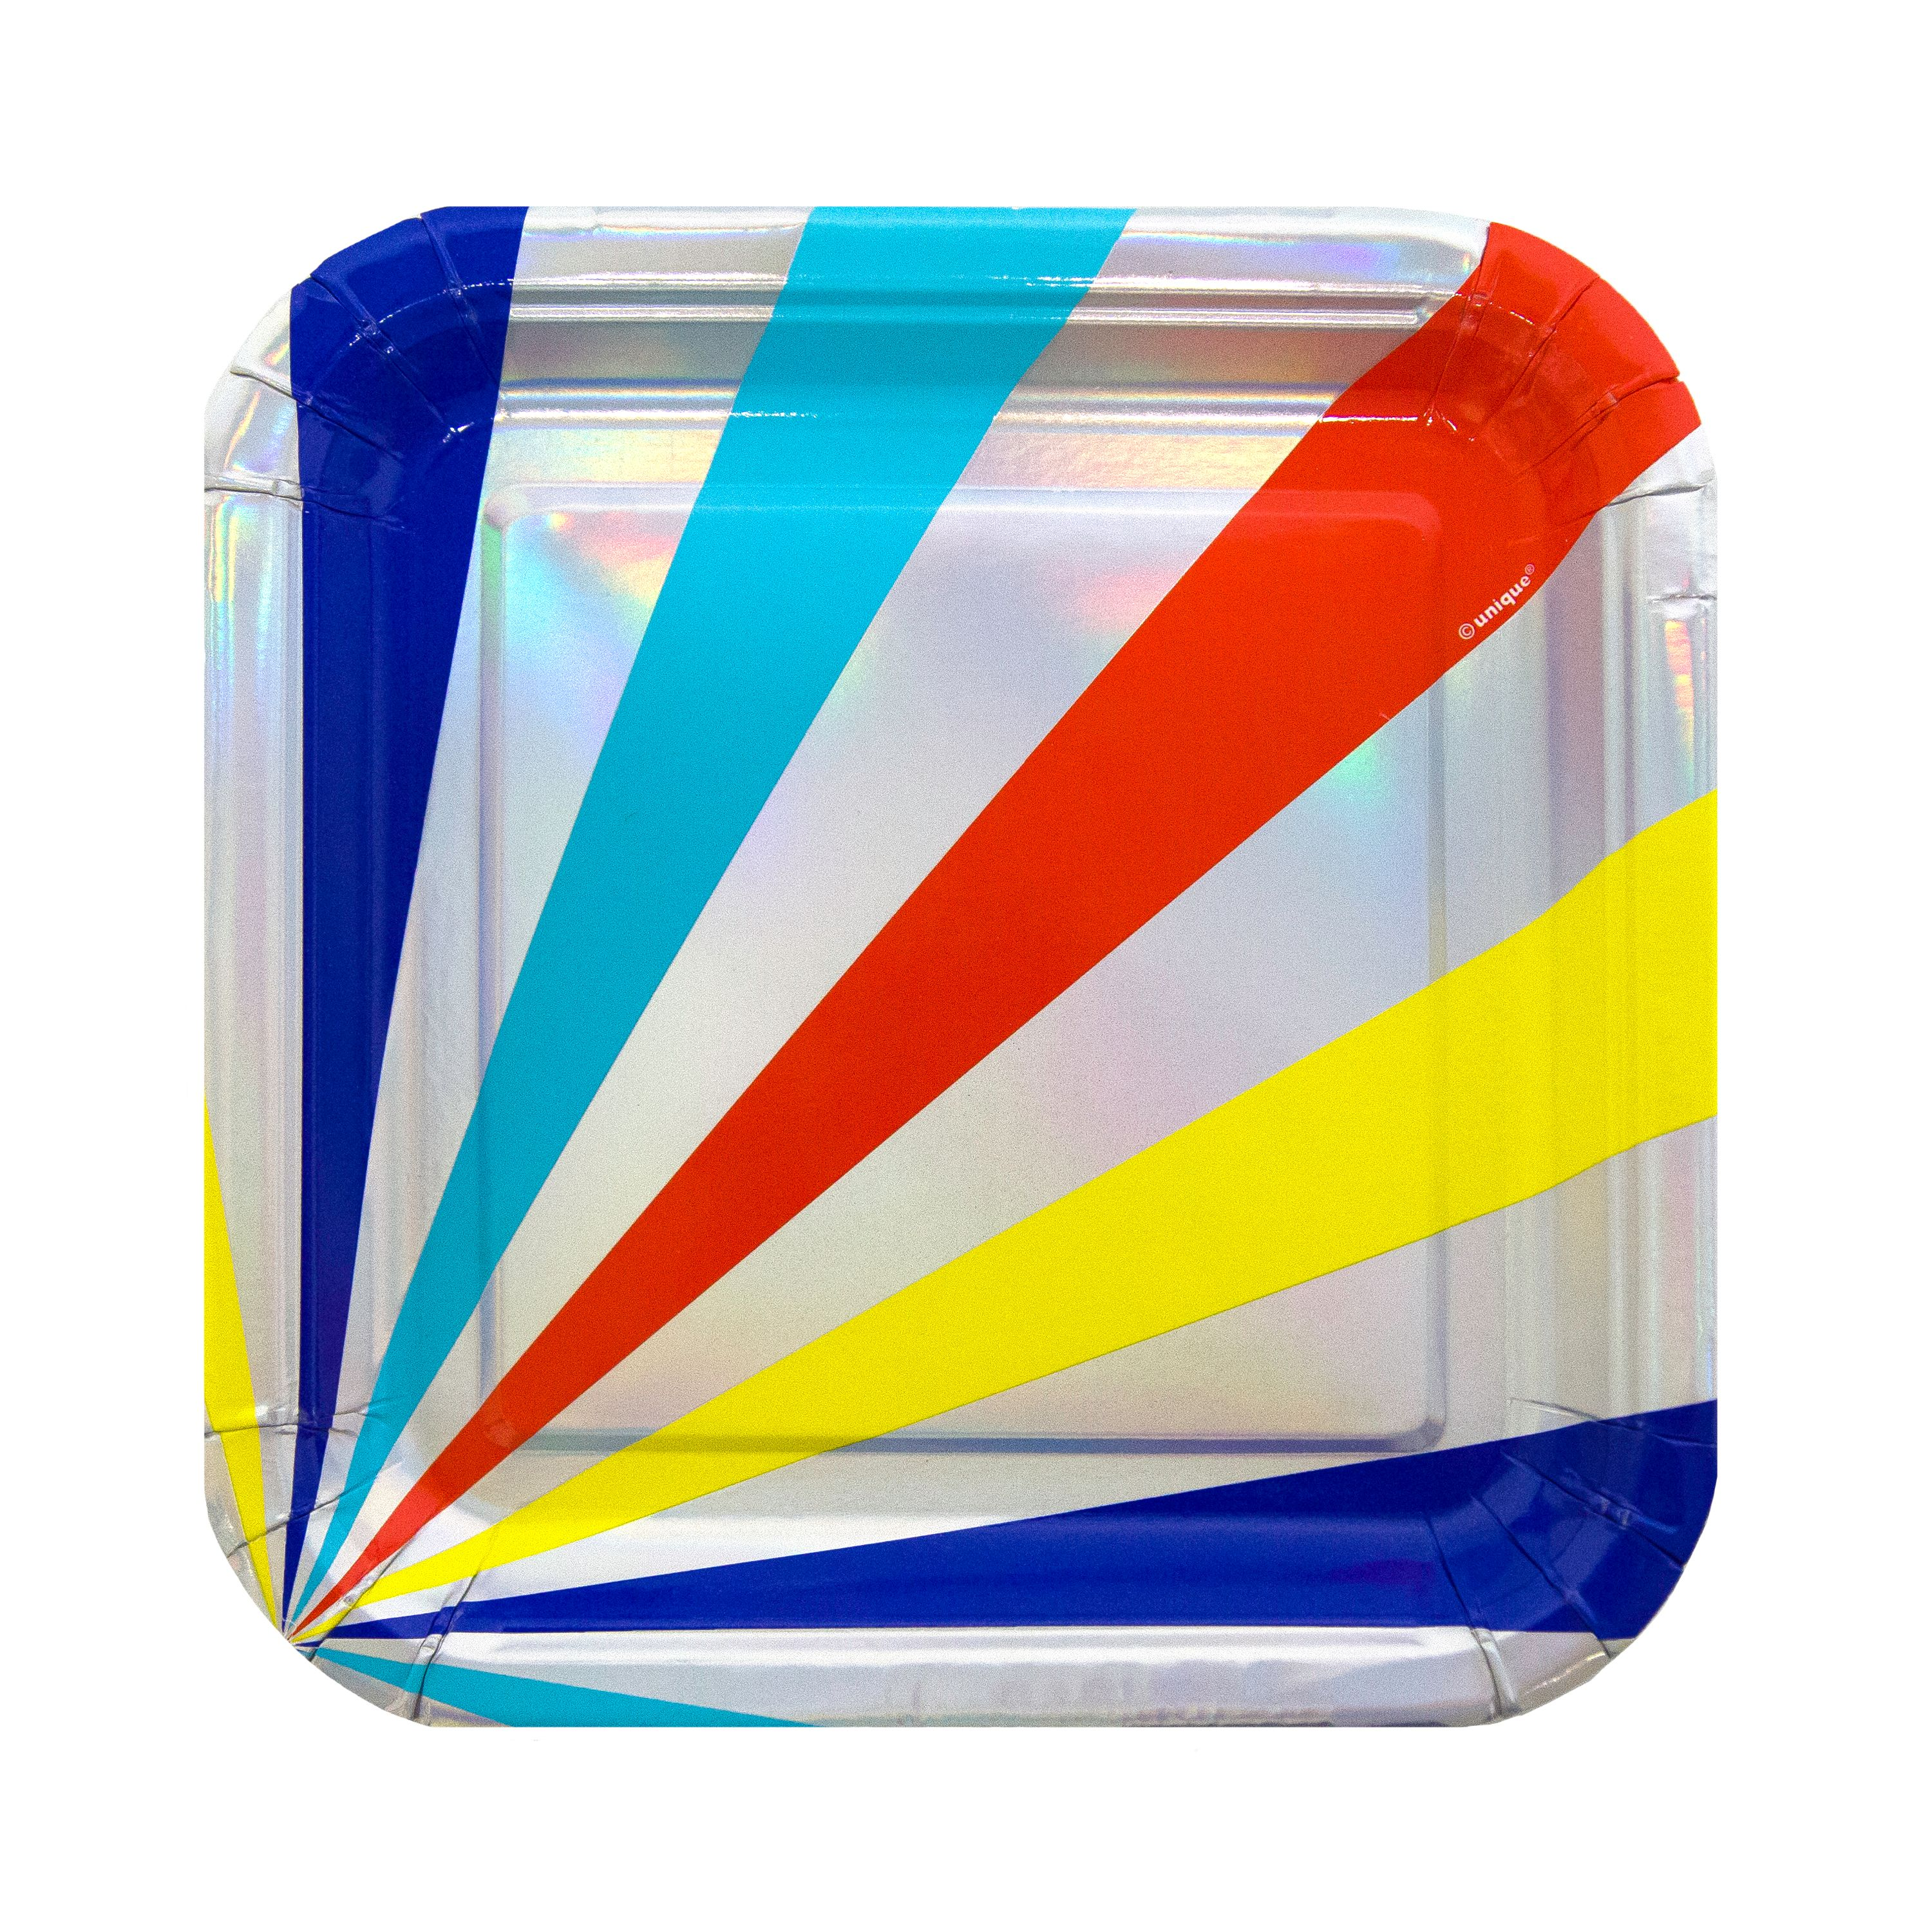 Square Oh Happy Day Paper Plates, 7 in, Iridescent Foil, 10ct